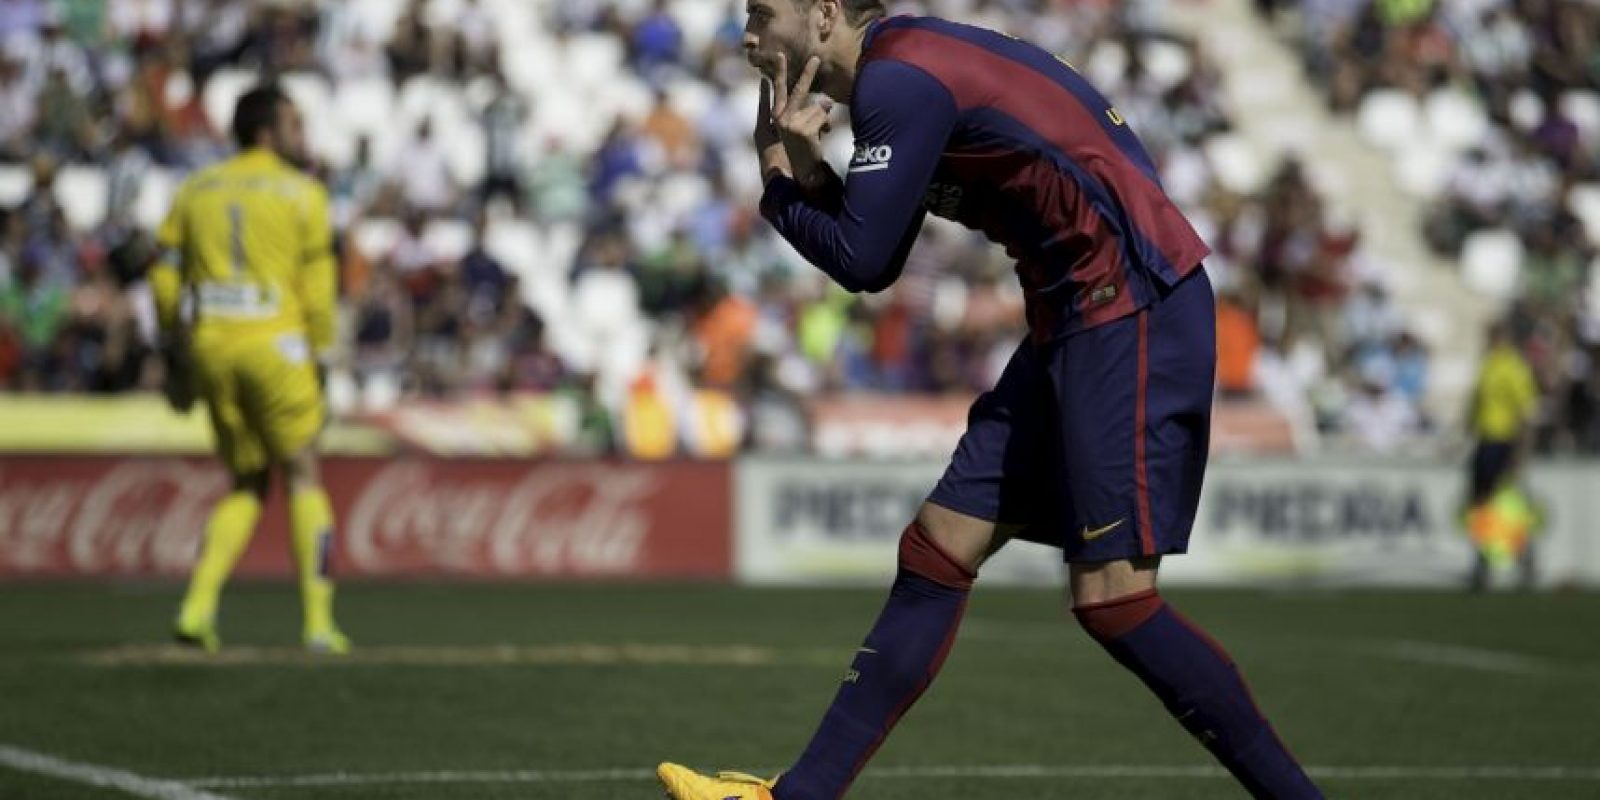 La zaga defensiva está liderada por Gerard Pique Foto: Getty Images